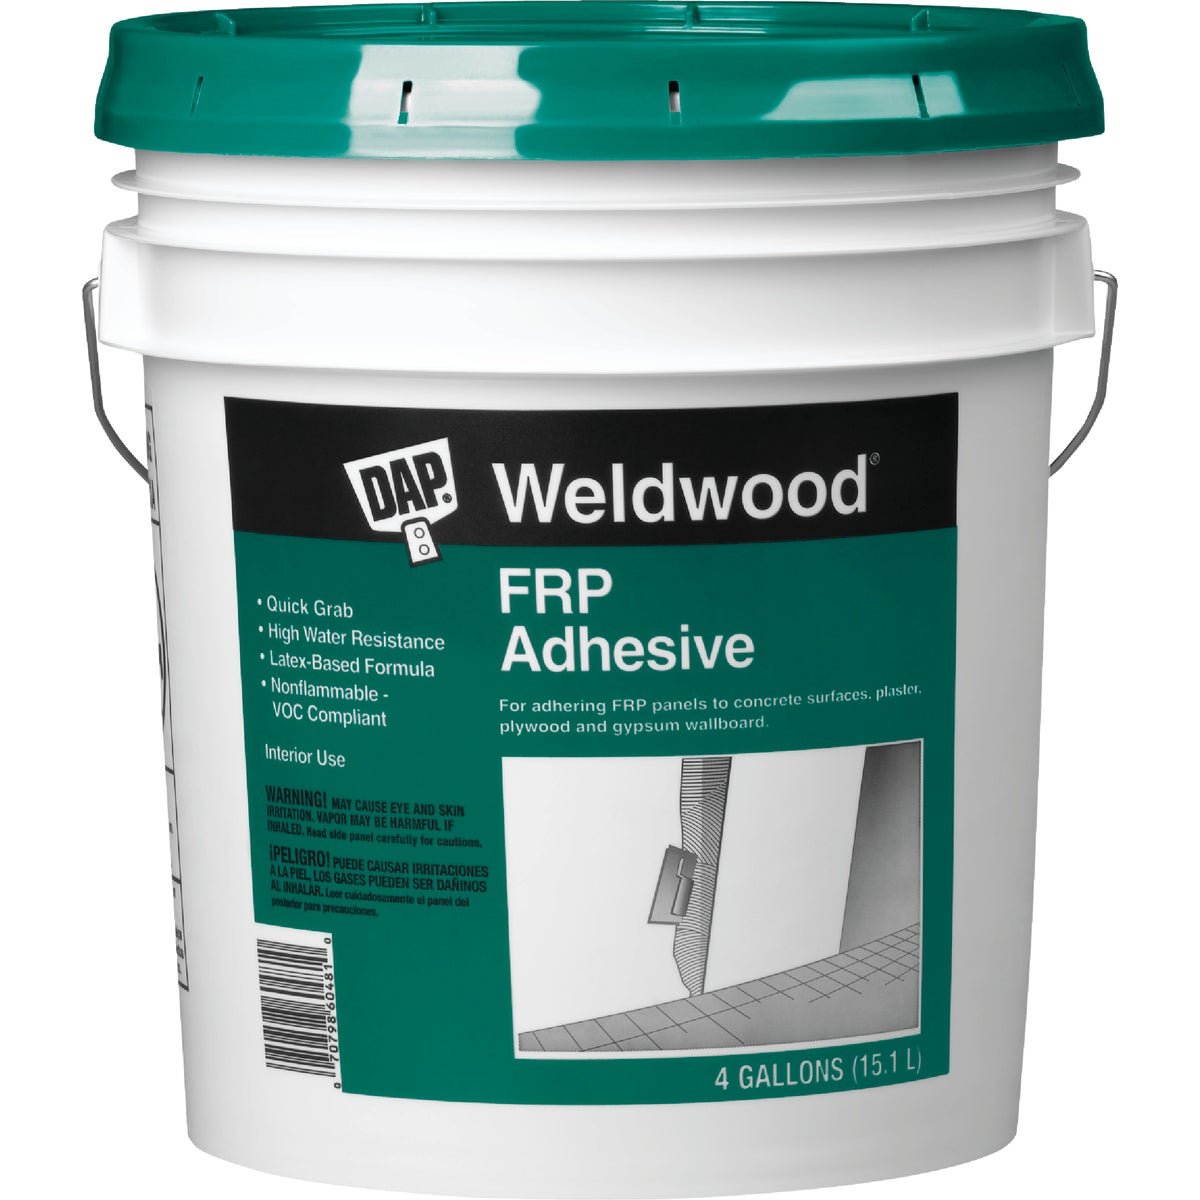 4GAL FRP PANEL ADHESIVE - 60481 by Dap Inc